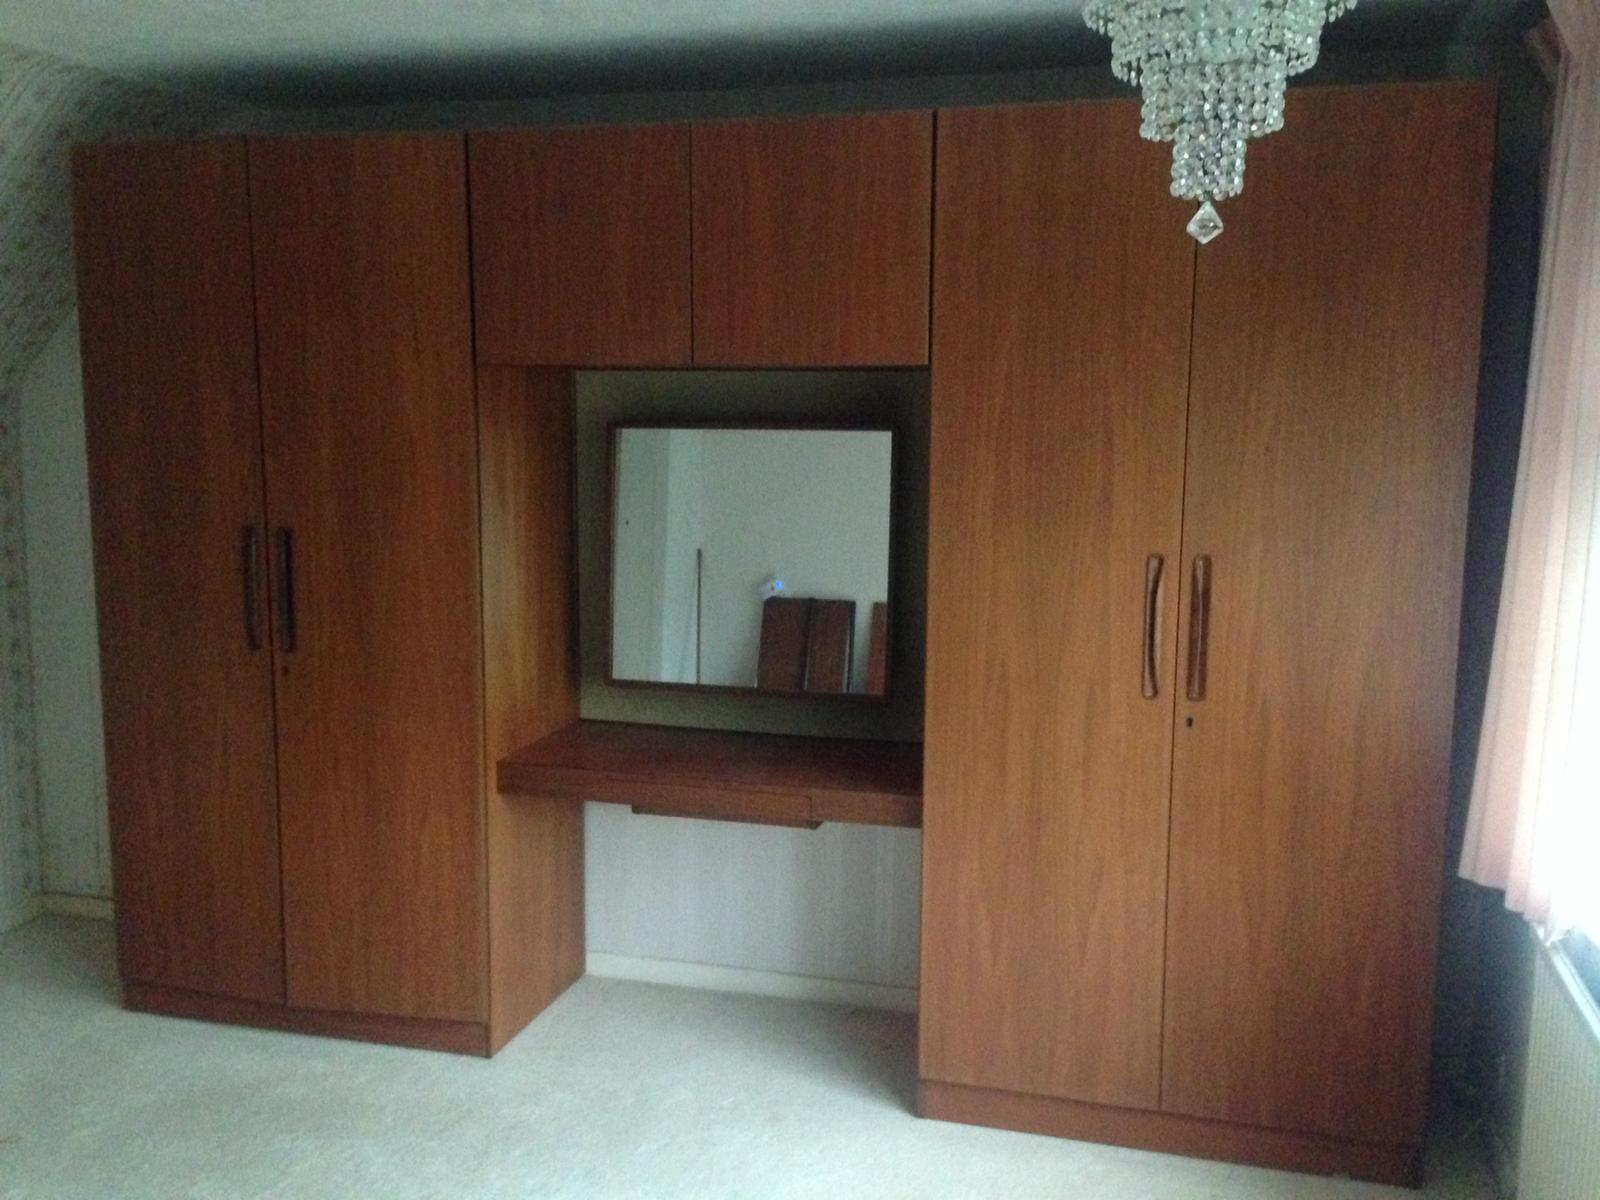 G Plan Triple wardrobe set. Currently dismantled for ease of transport. Price includes re-assembly at the purchasers property.